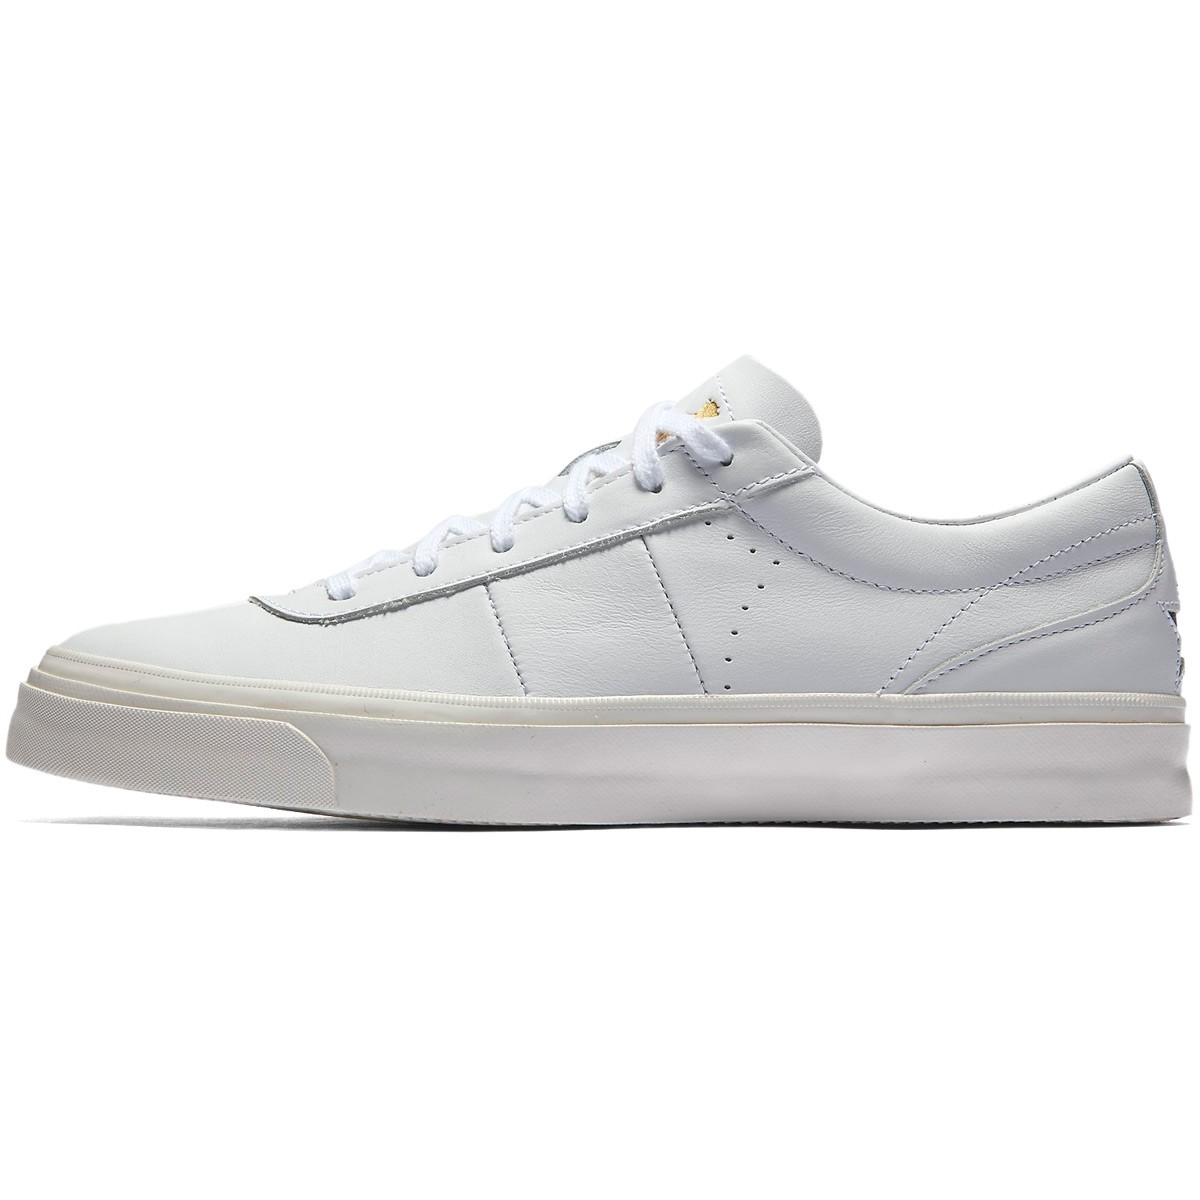 Converse Sage Elsesser One Star CC OX Premium Leather Shoes